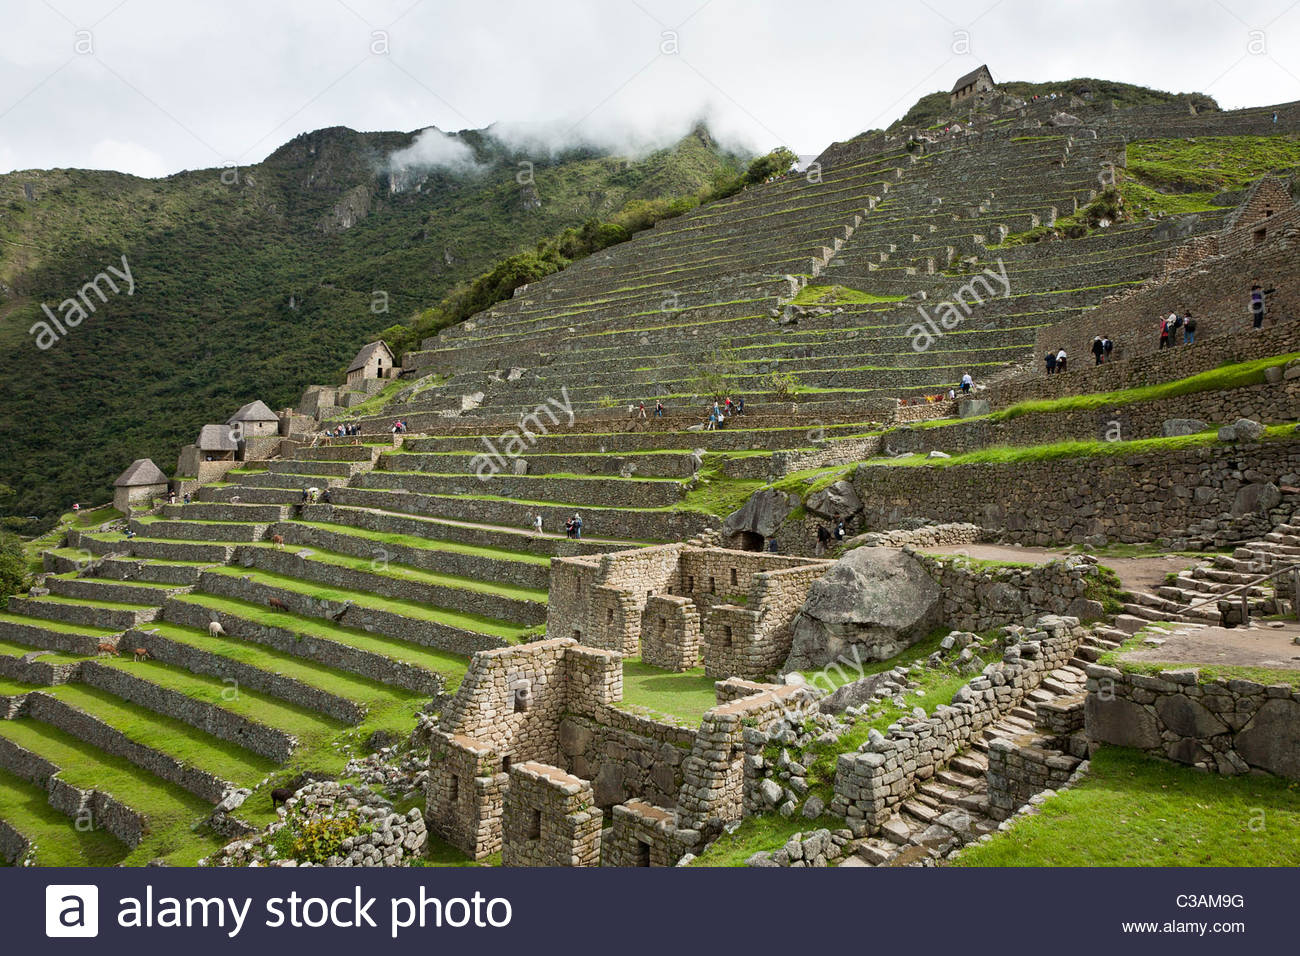 View of agricultural terraces in the western agricultural sector of the Machu Picchu complex. Stock Photo